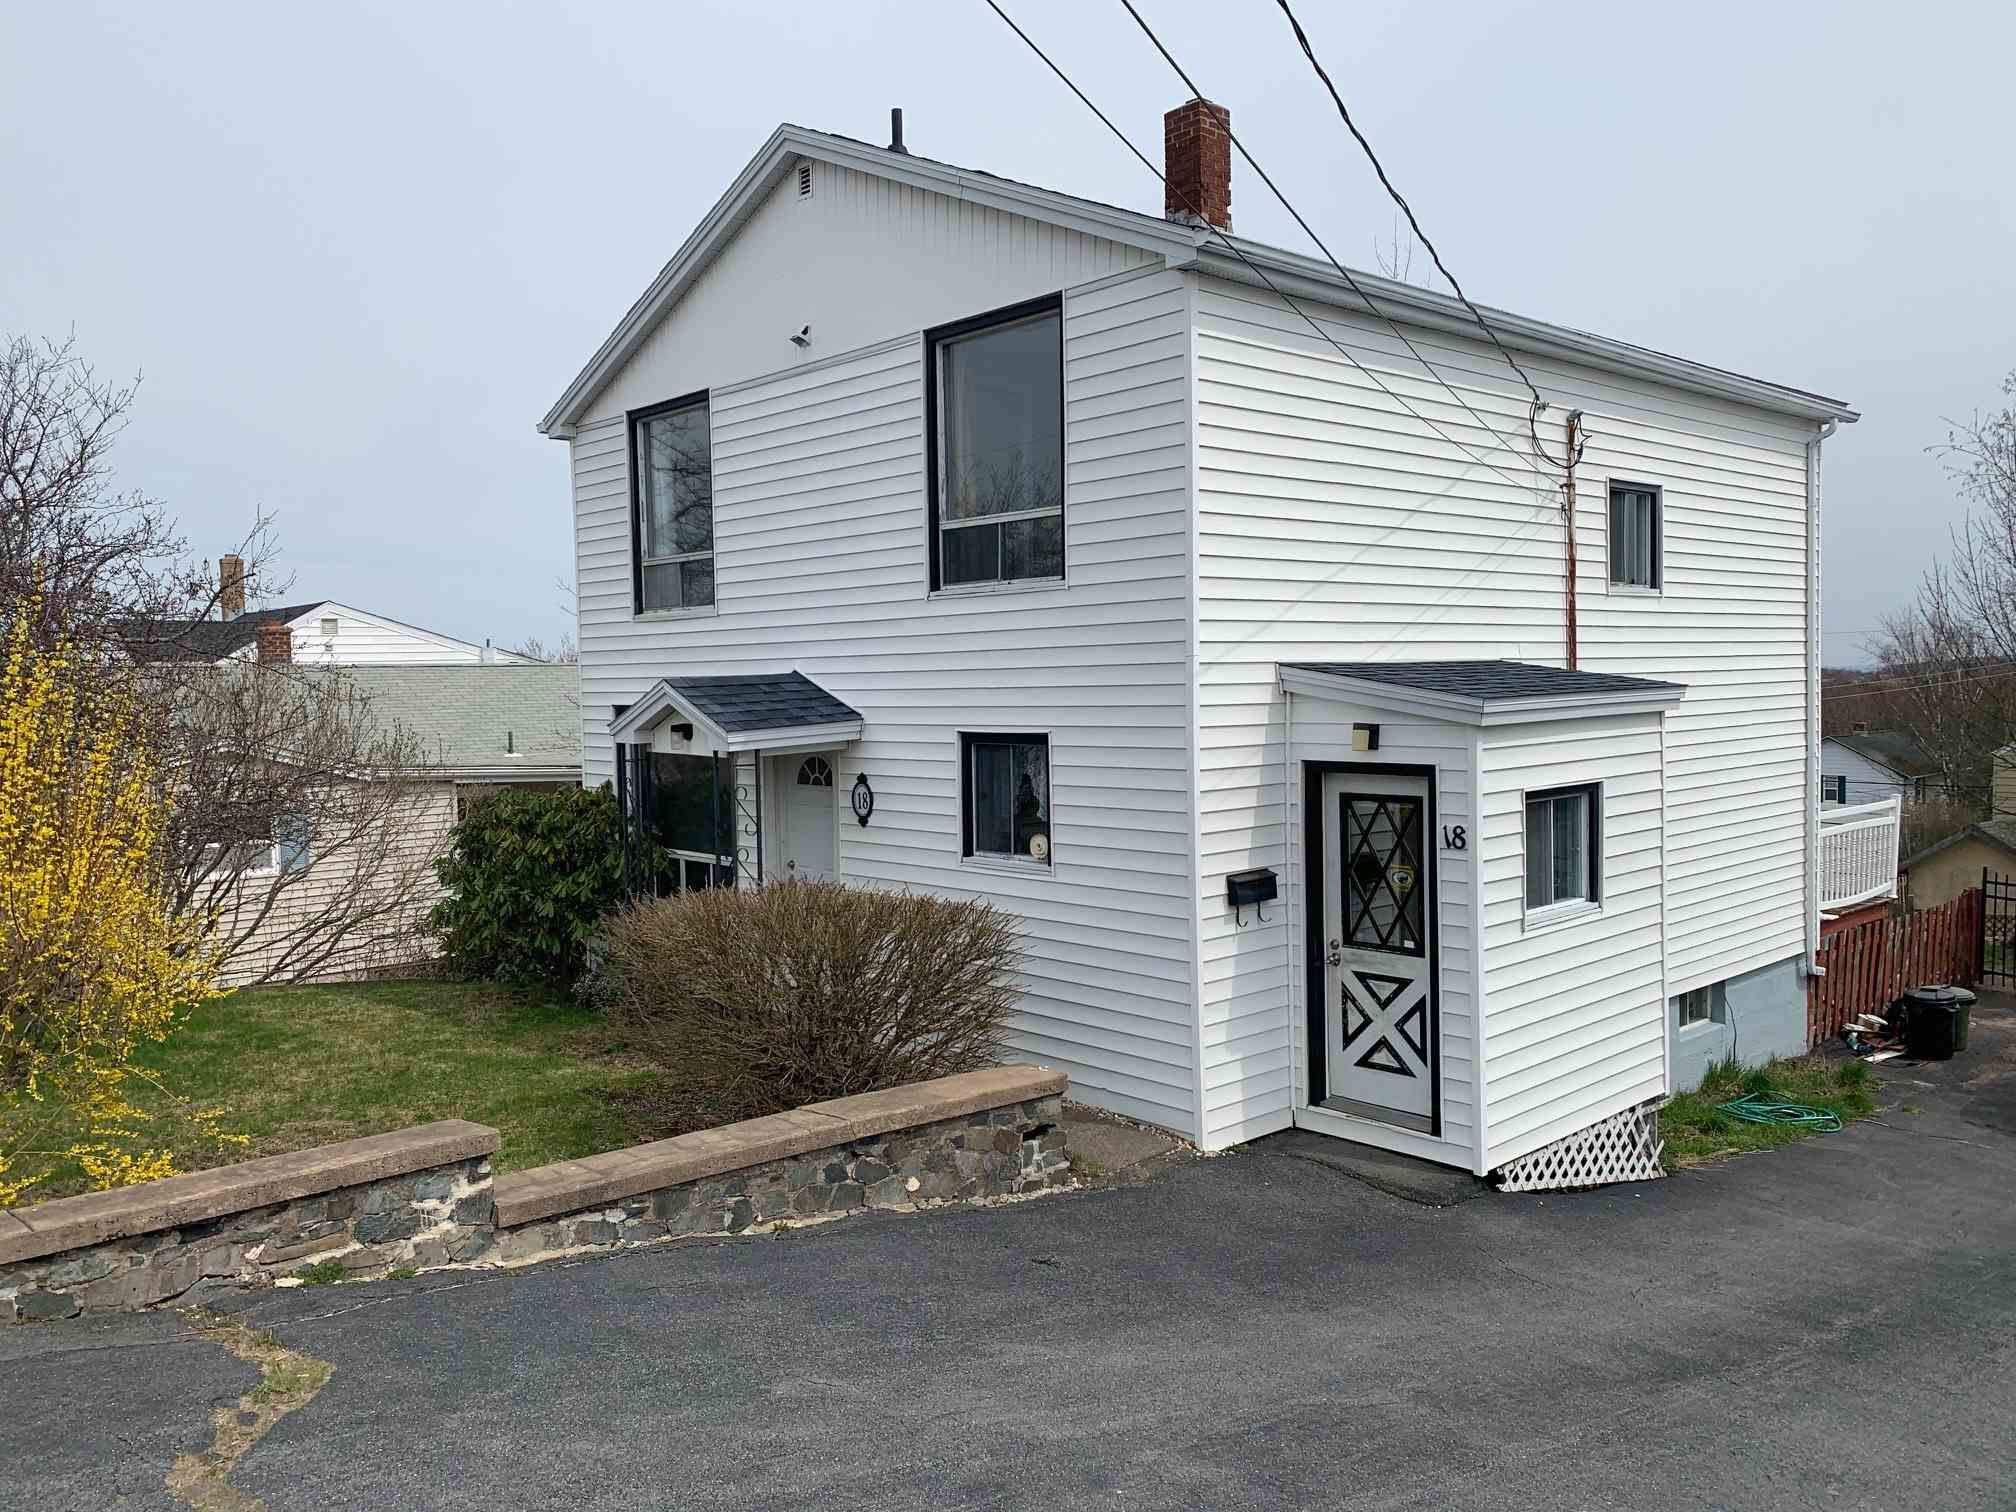 Main Photo: 18 Adelaide Avenue in Fairview: 6-Fairview Residential for sale (Halifax-Dartmouth)  : MLS®# 202109796